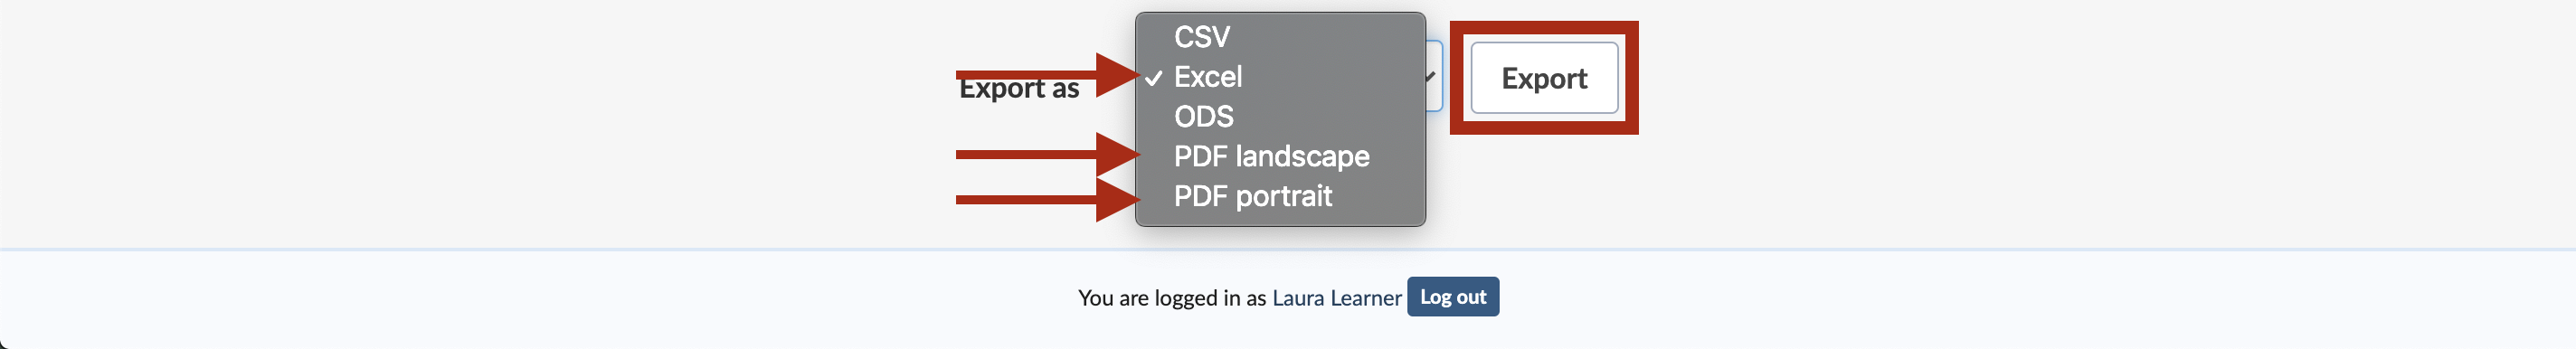 "DHS Learning transcript page, with the ""Export as"" dropdown menu expanded, and with the Excel/PDF landscape/PDF portrait options and ""Export"" button highlighted"